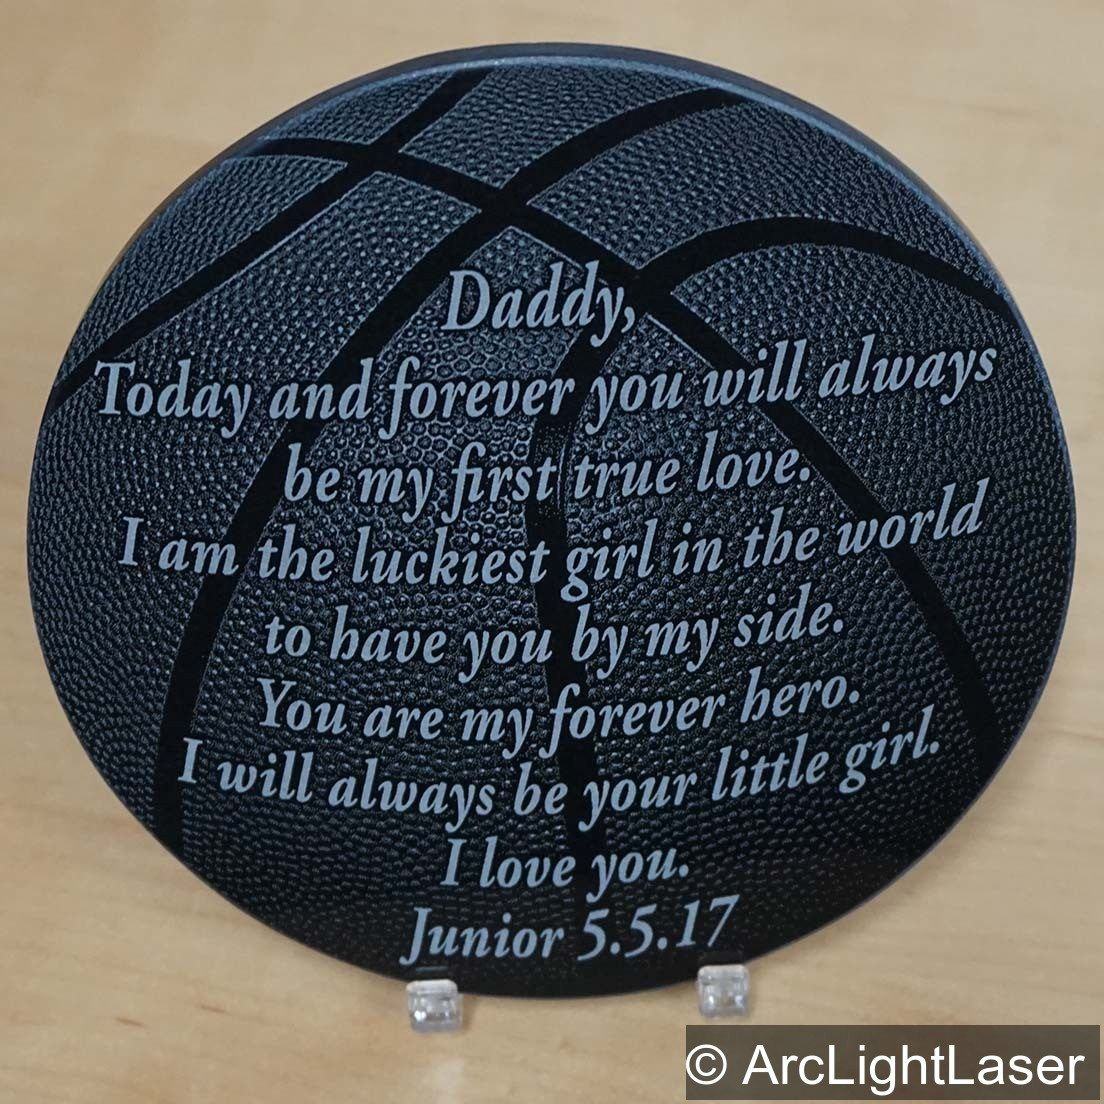 Sports Plaque Bride To Her Father Gift Custom Engraved Etsy Gifts For Father Custom Engraving Sports Plaque